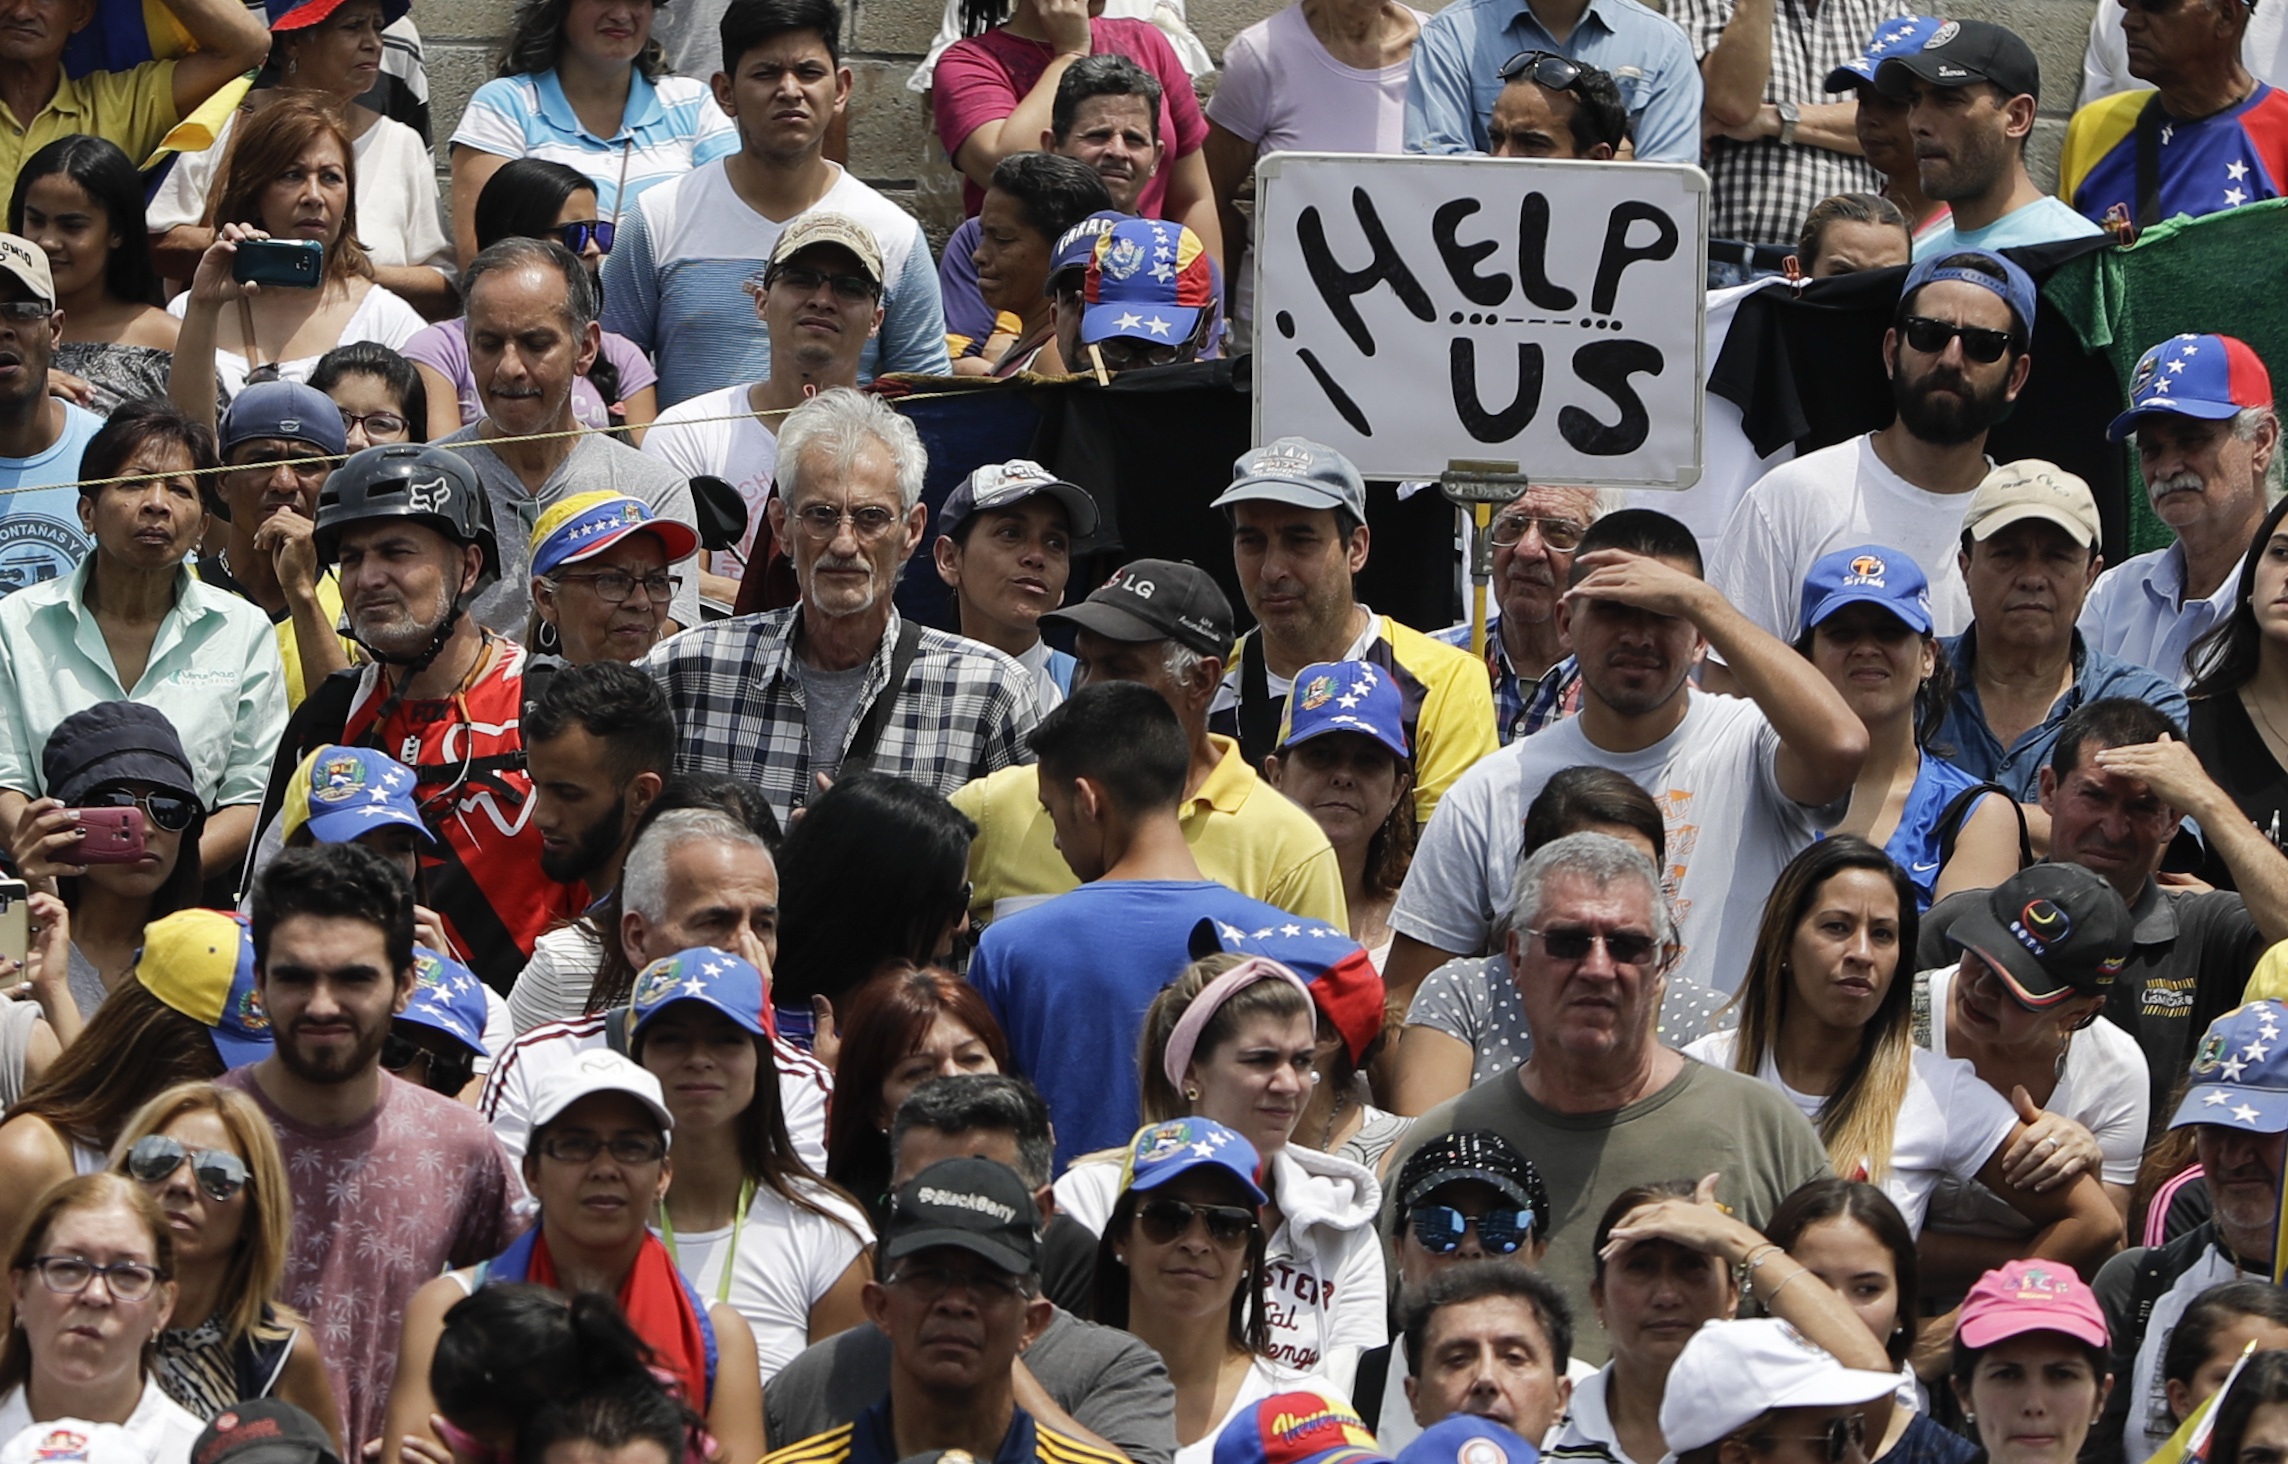 Venezuela's Power Struggle Reaches a Tense Stalemate, as Human Suffering Deepens